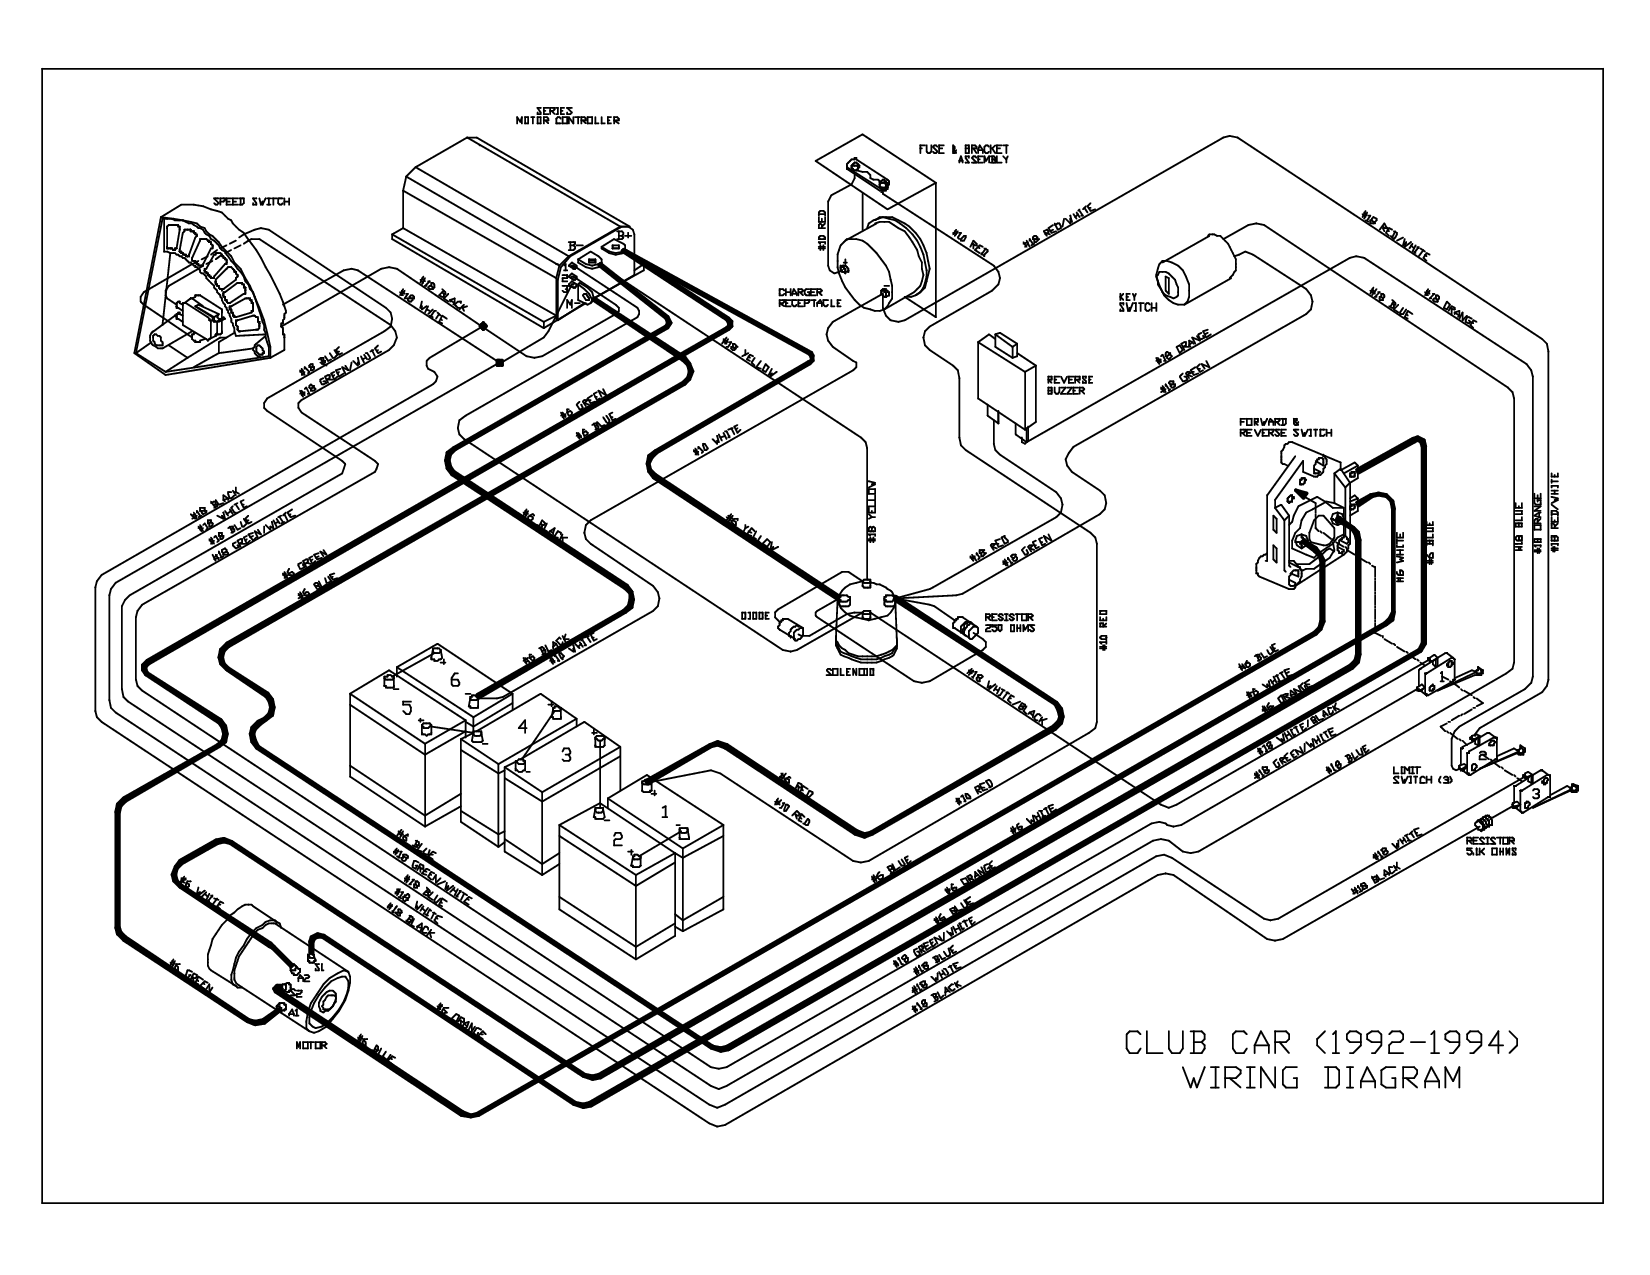 92 club car wiring diagram 1995    club       car       wiring       diagram       club       car     1992 1994     wiring     1995    club       car       wiring       diagram       club       car     1992 1994     wiring